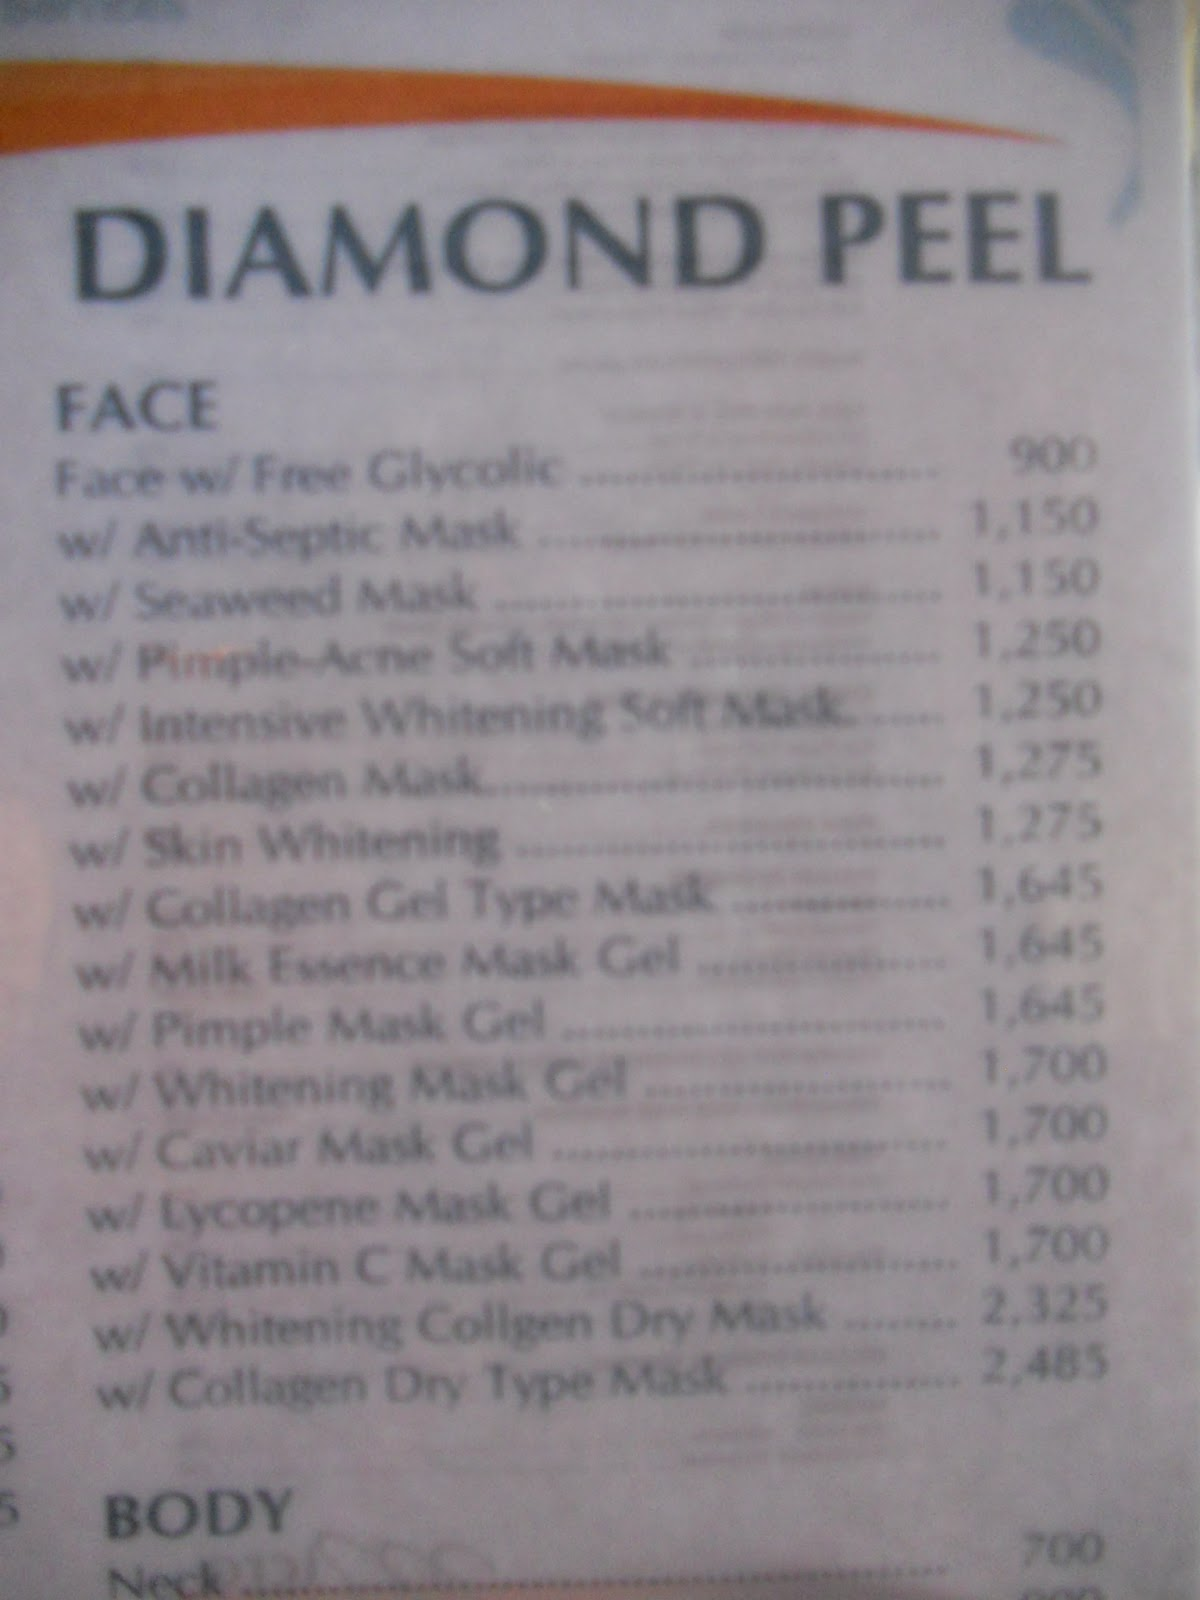 prices com rww of in colored e rwwise and hues range diamond pink gemwise secondary gemepriceeinglecolorgrid screen showing price gem list tag blog primary diamonds